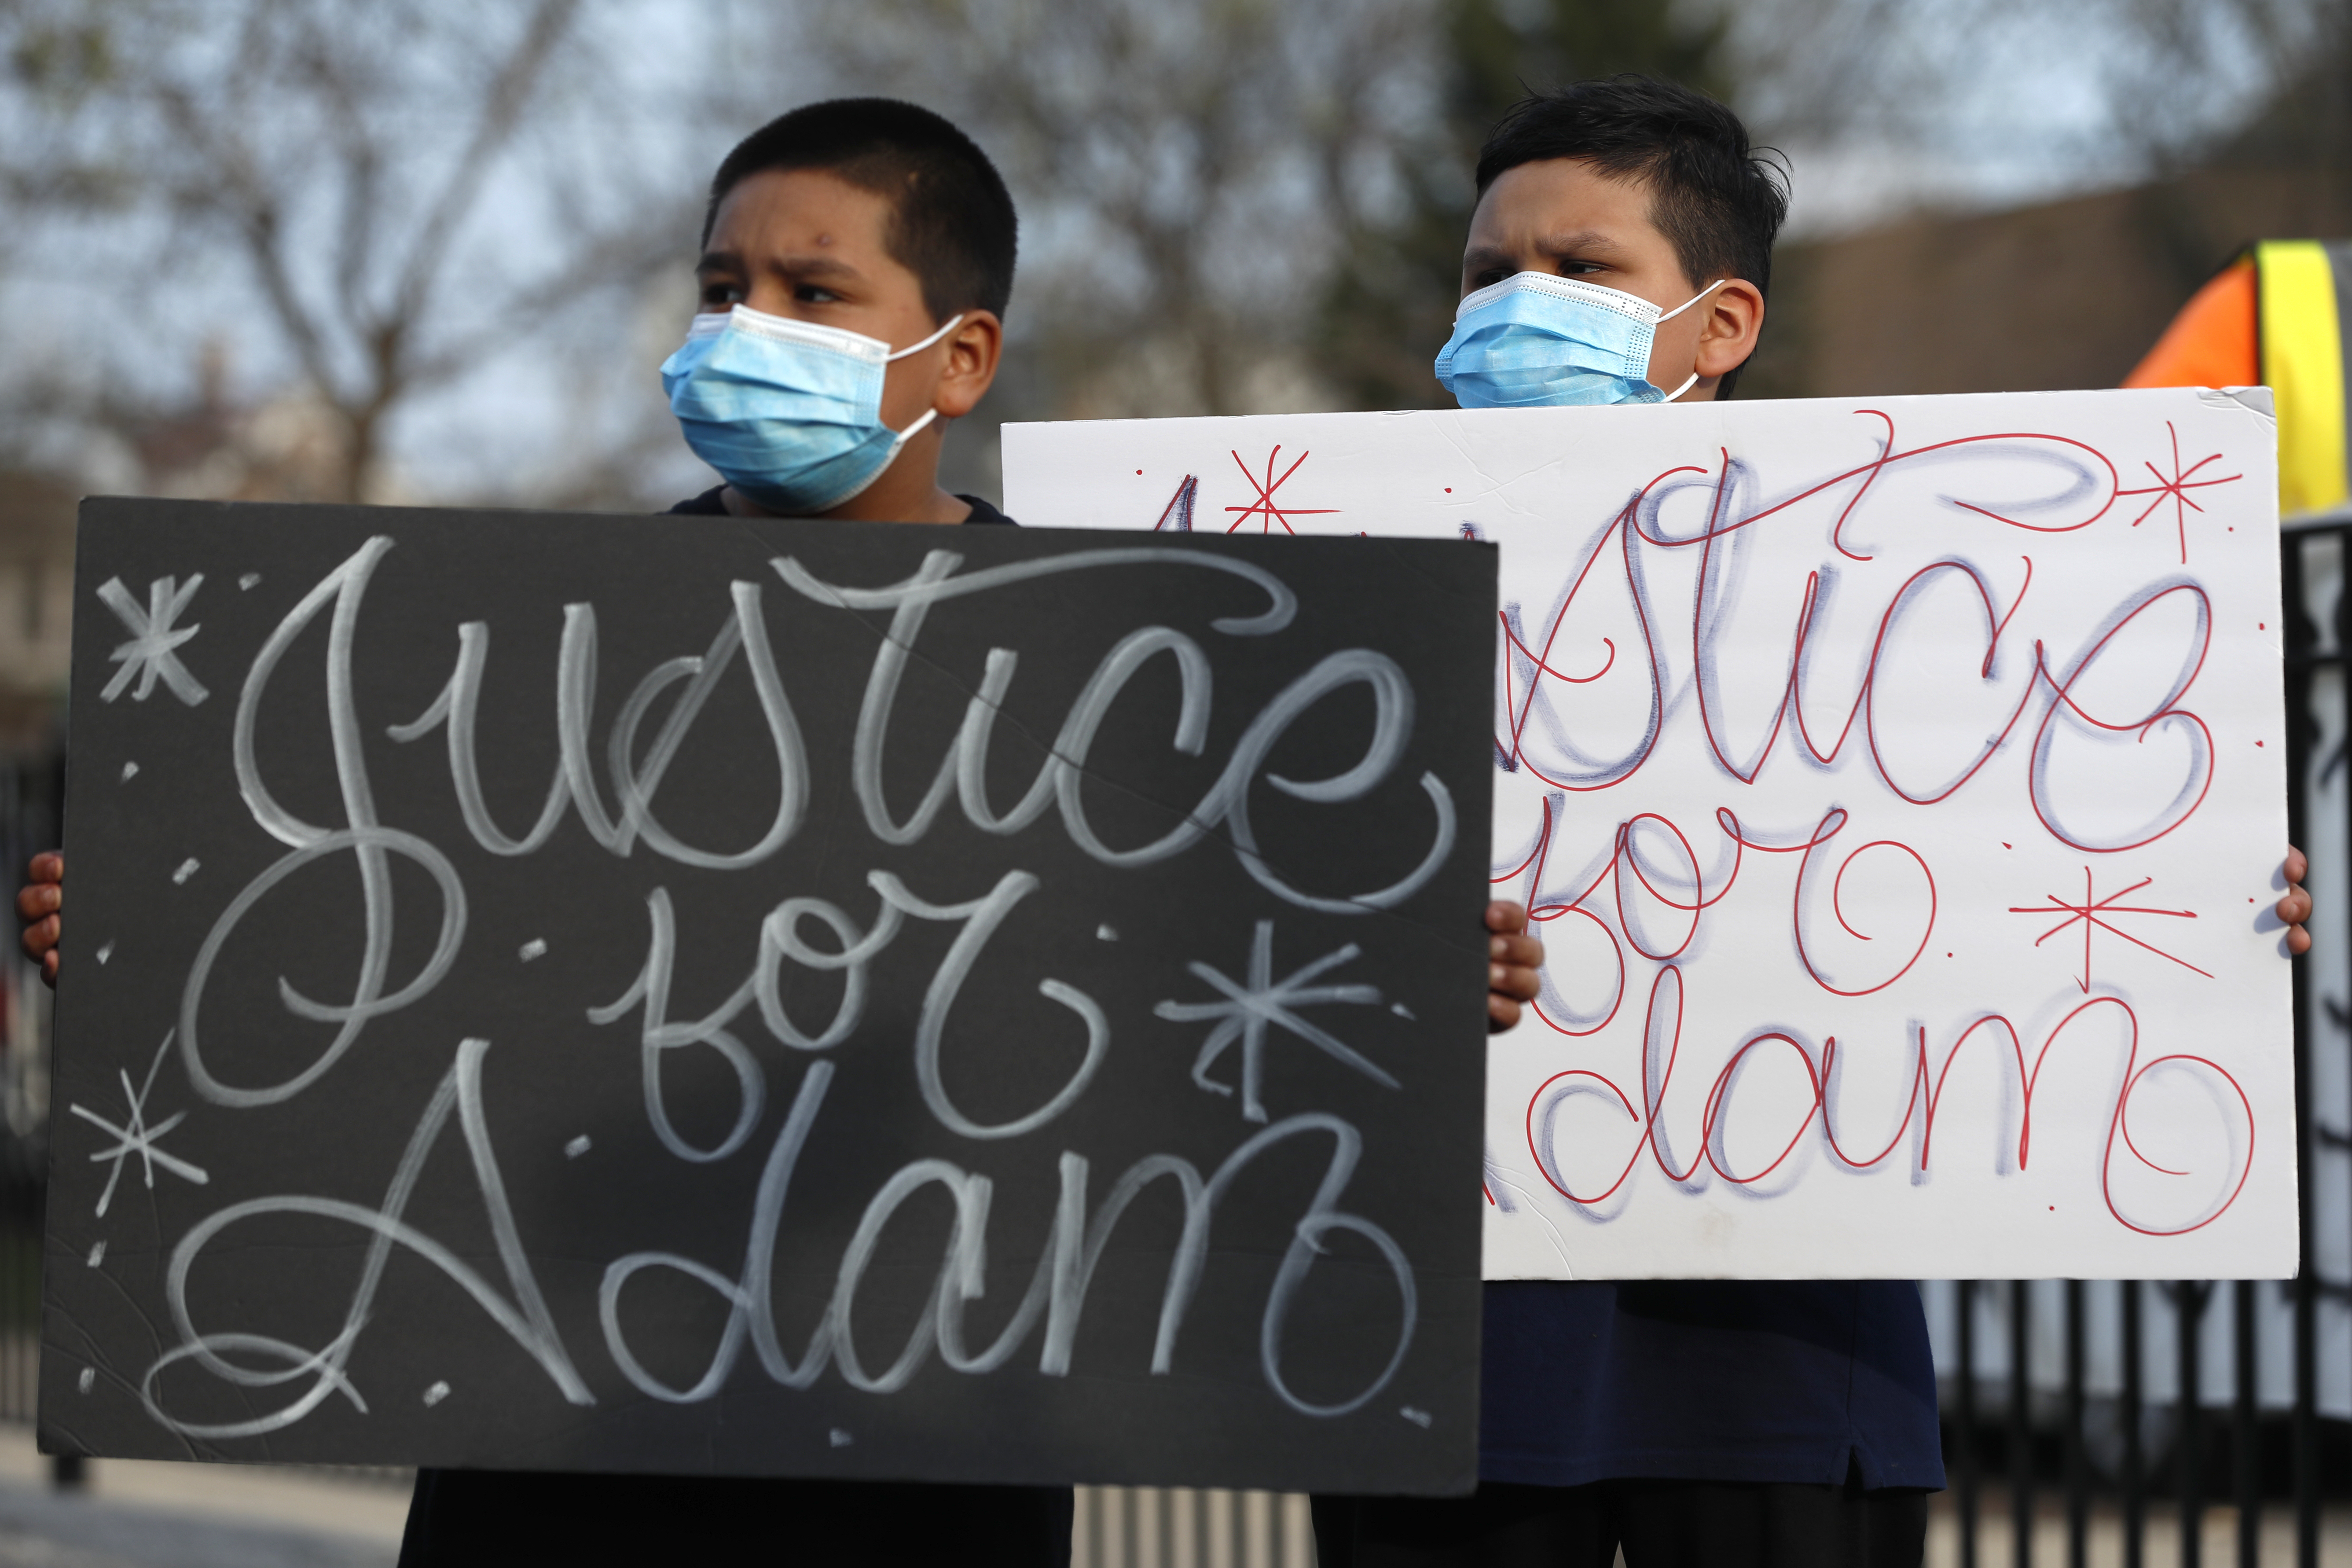 In this April 6, 2021 Jacob Perea, 7, left and Juan Perea, 9, hold signs as they attend a news conference following the death of 13-year-old Adam Toledo, who was shot by a Chicago police officer on March 29.